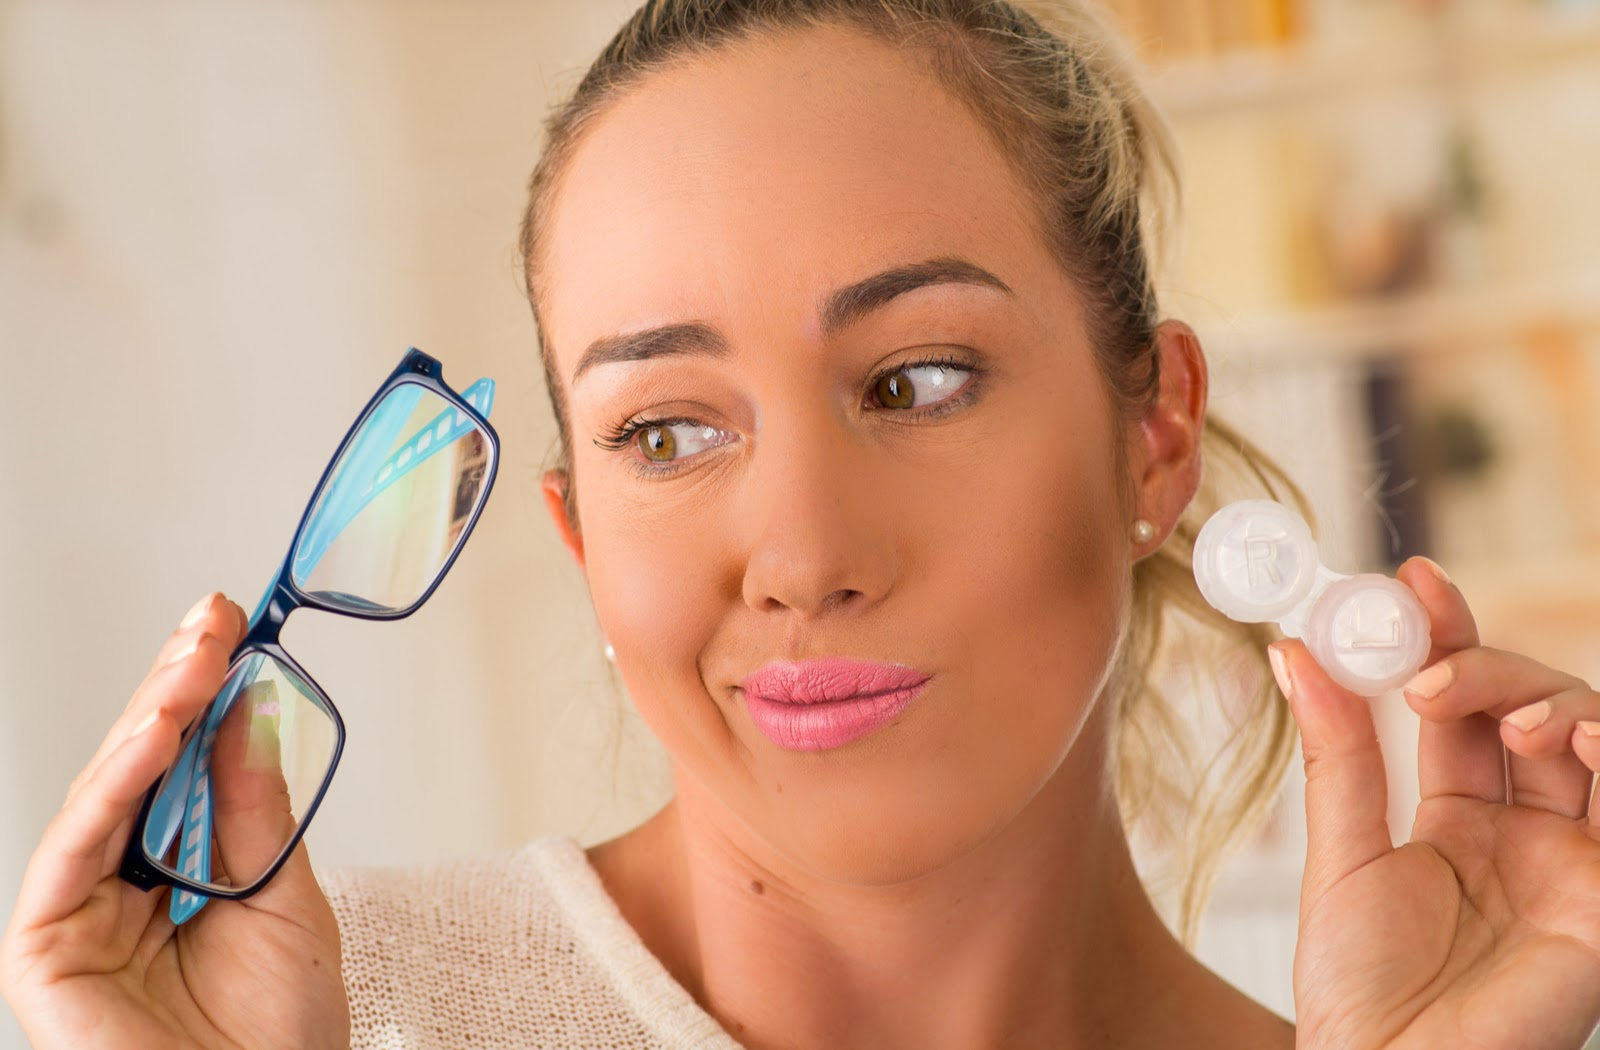 Young woman holding glasses in right hand and contact lens in her left hand wondering about which to pick for myopia control